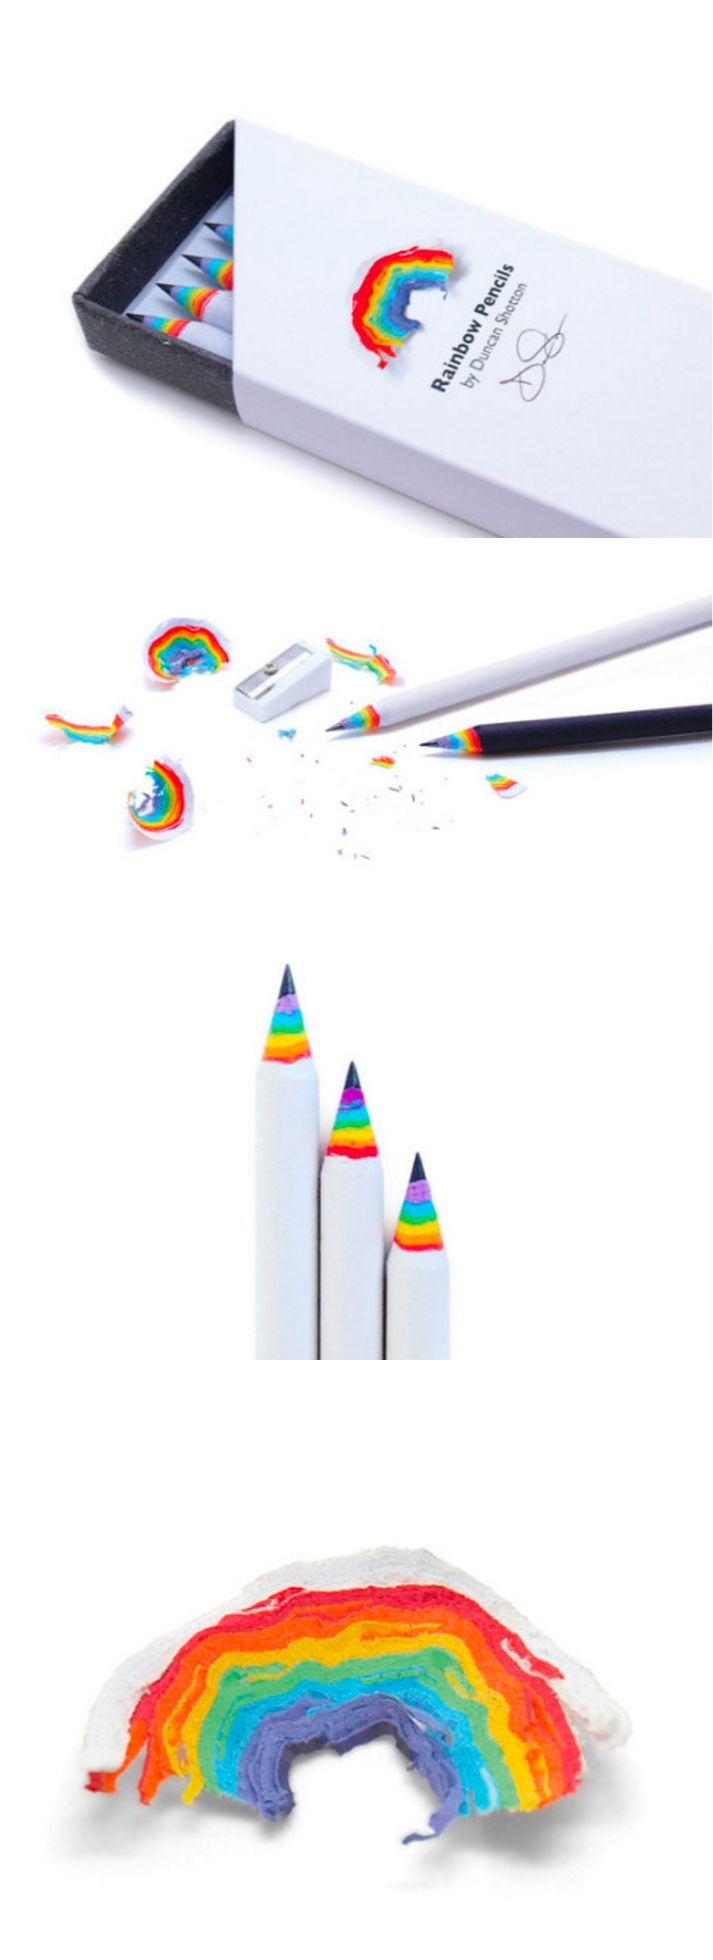 Rainbow Pencils let you create beautiful paper rainbows each time you sharpen them.